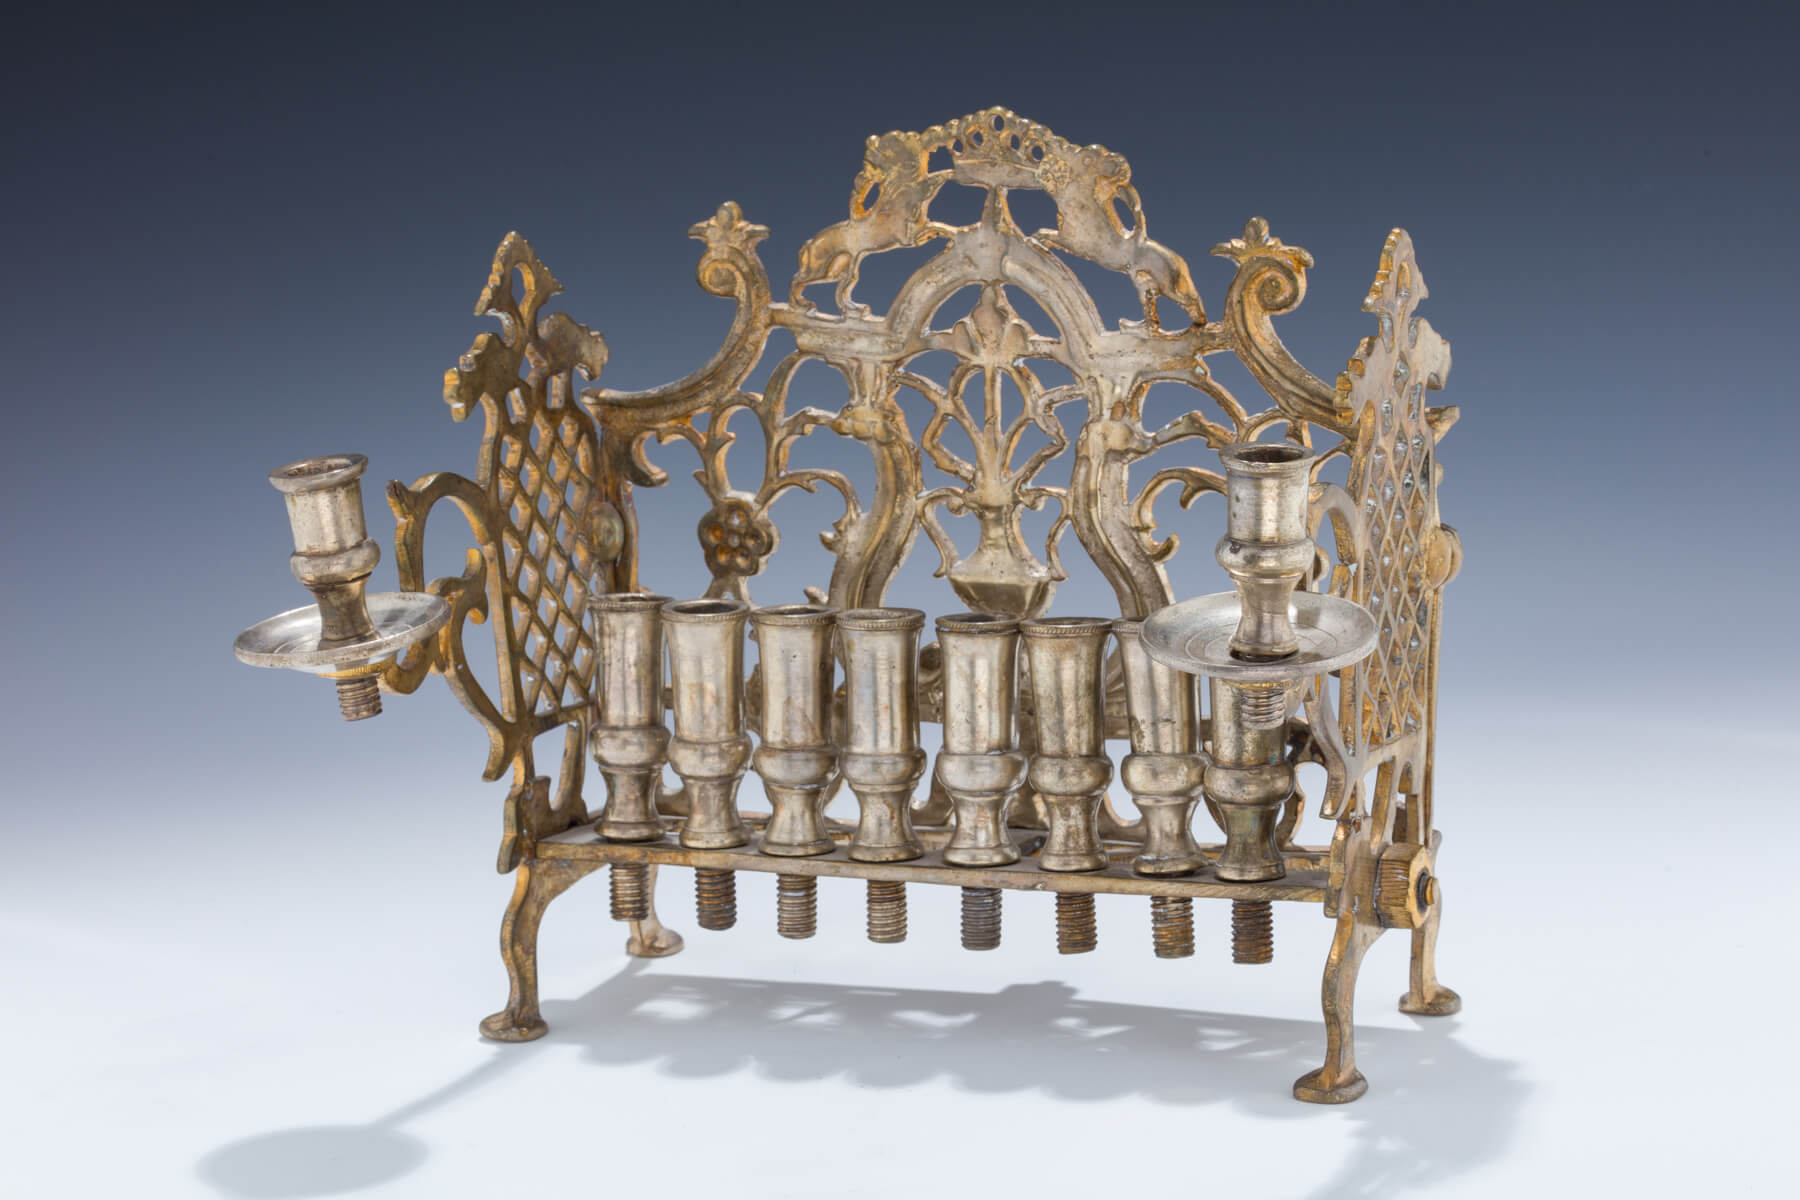 126. A Large Brass Hanukkah Lamp